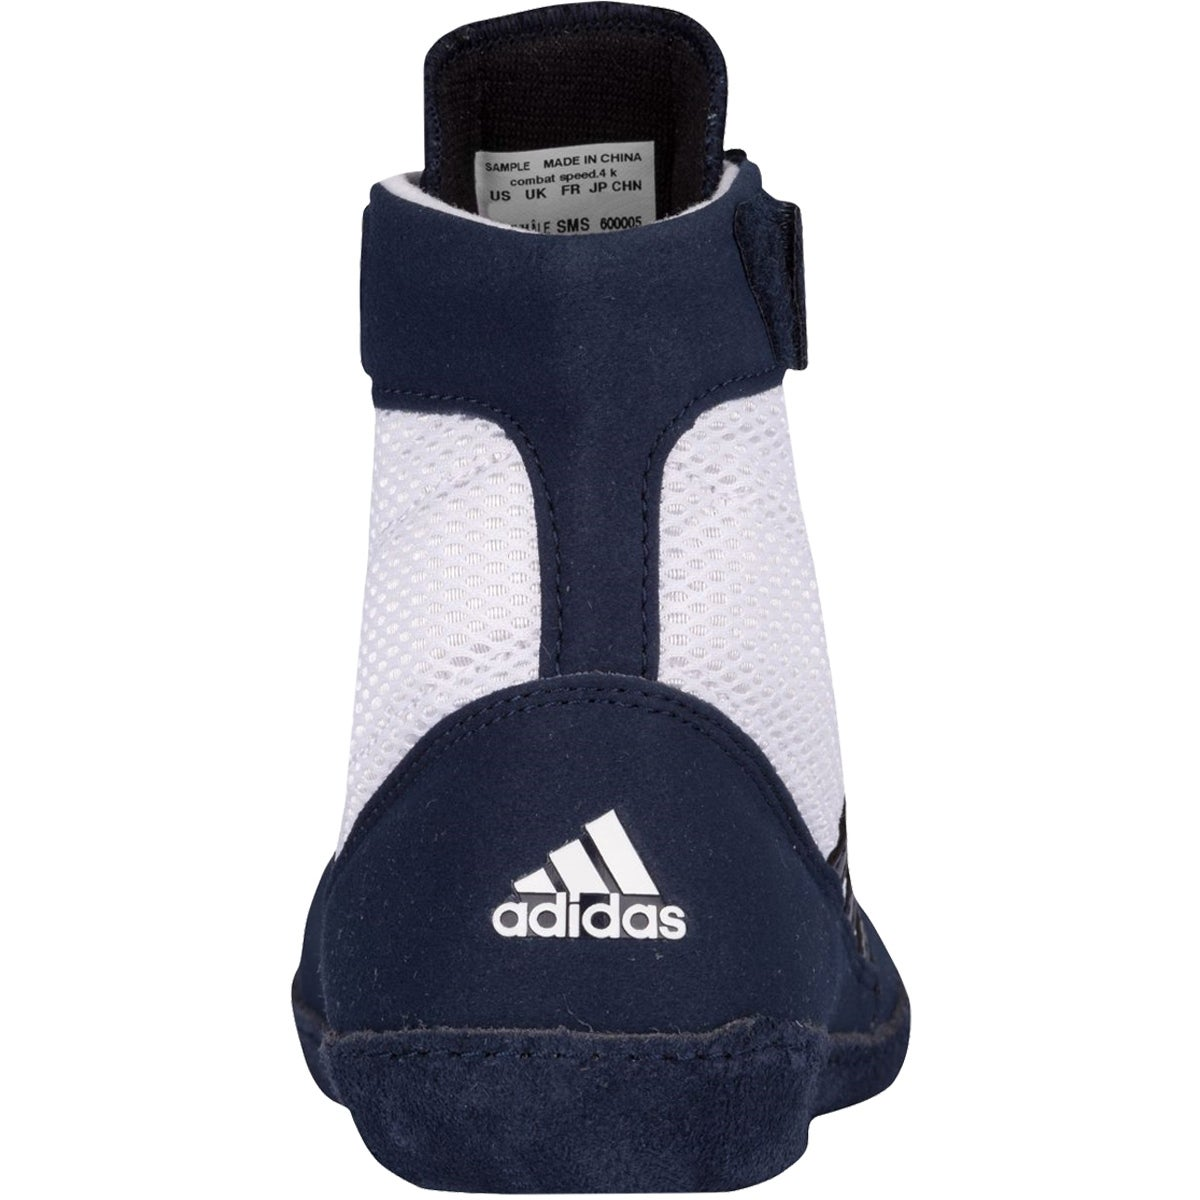 ef03d450a794 Shop Adidas Combat Speed 4 Youth Wrestling Shoes - White Navy - Free  Shipping Today - Overstock - 16629704